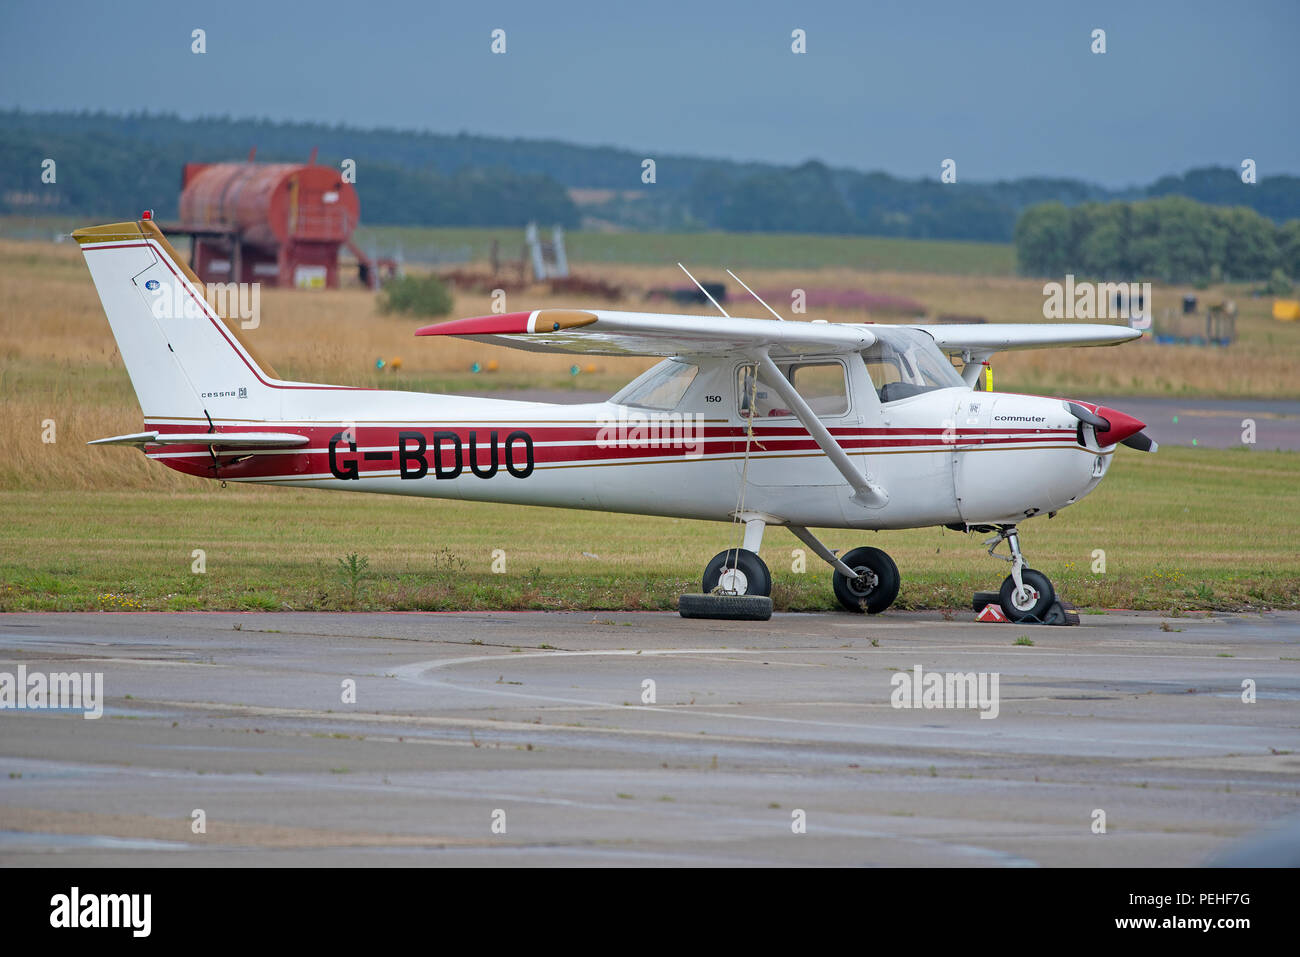 Reims F150 on a stop over at Inverness Airport in the Scottish Highlands UK. - Stock Image